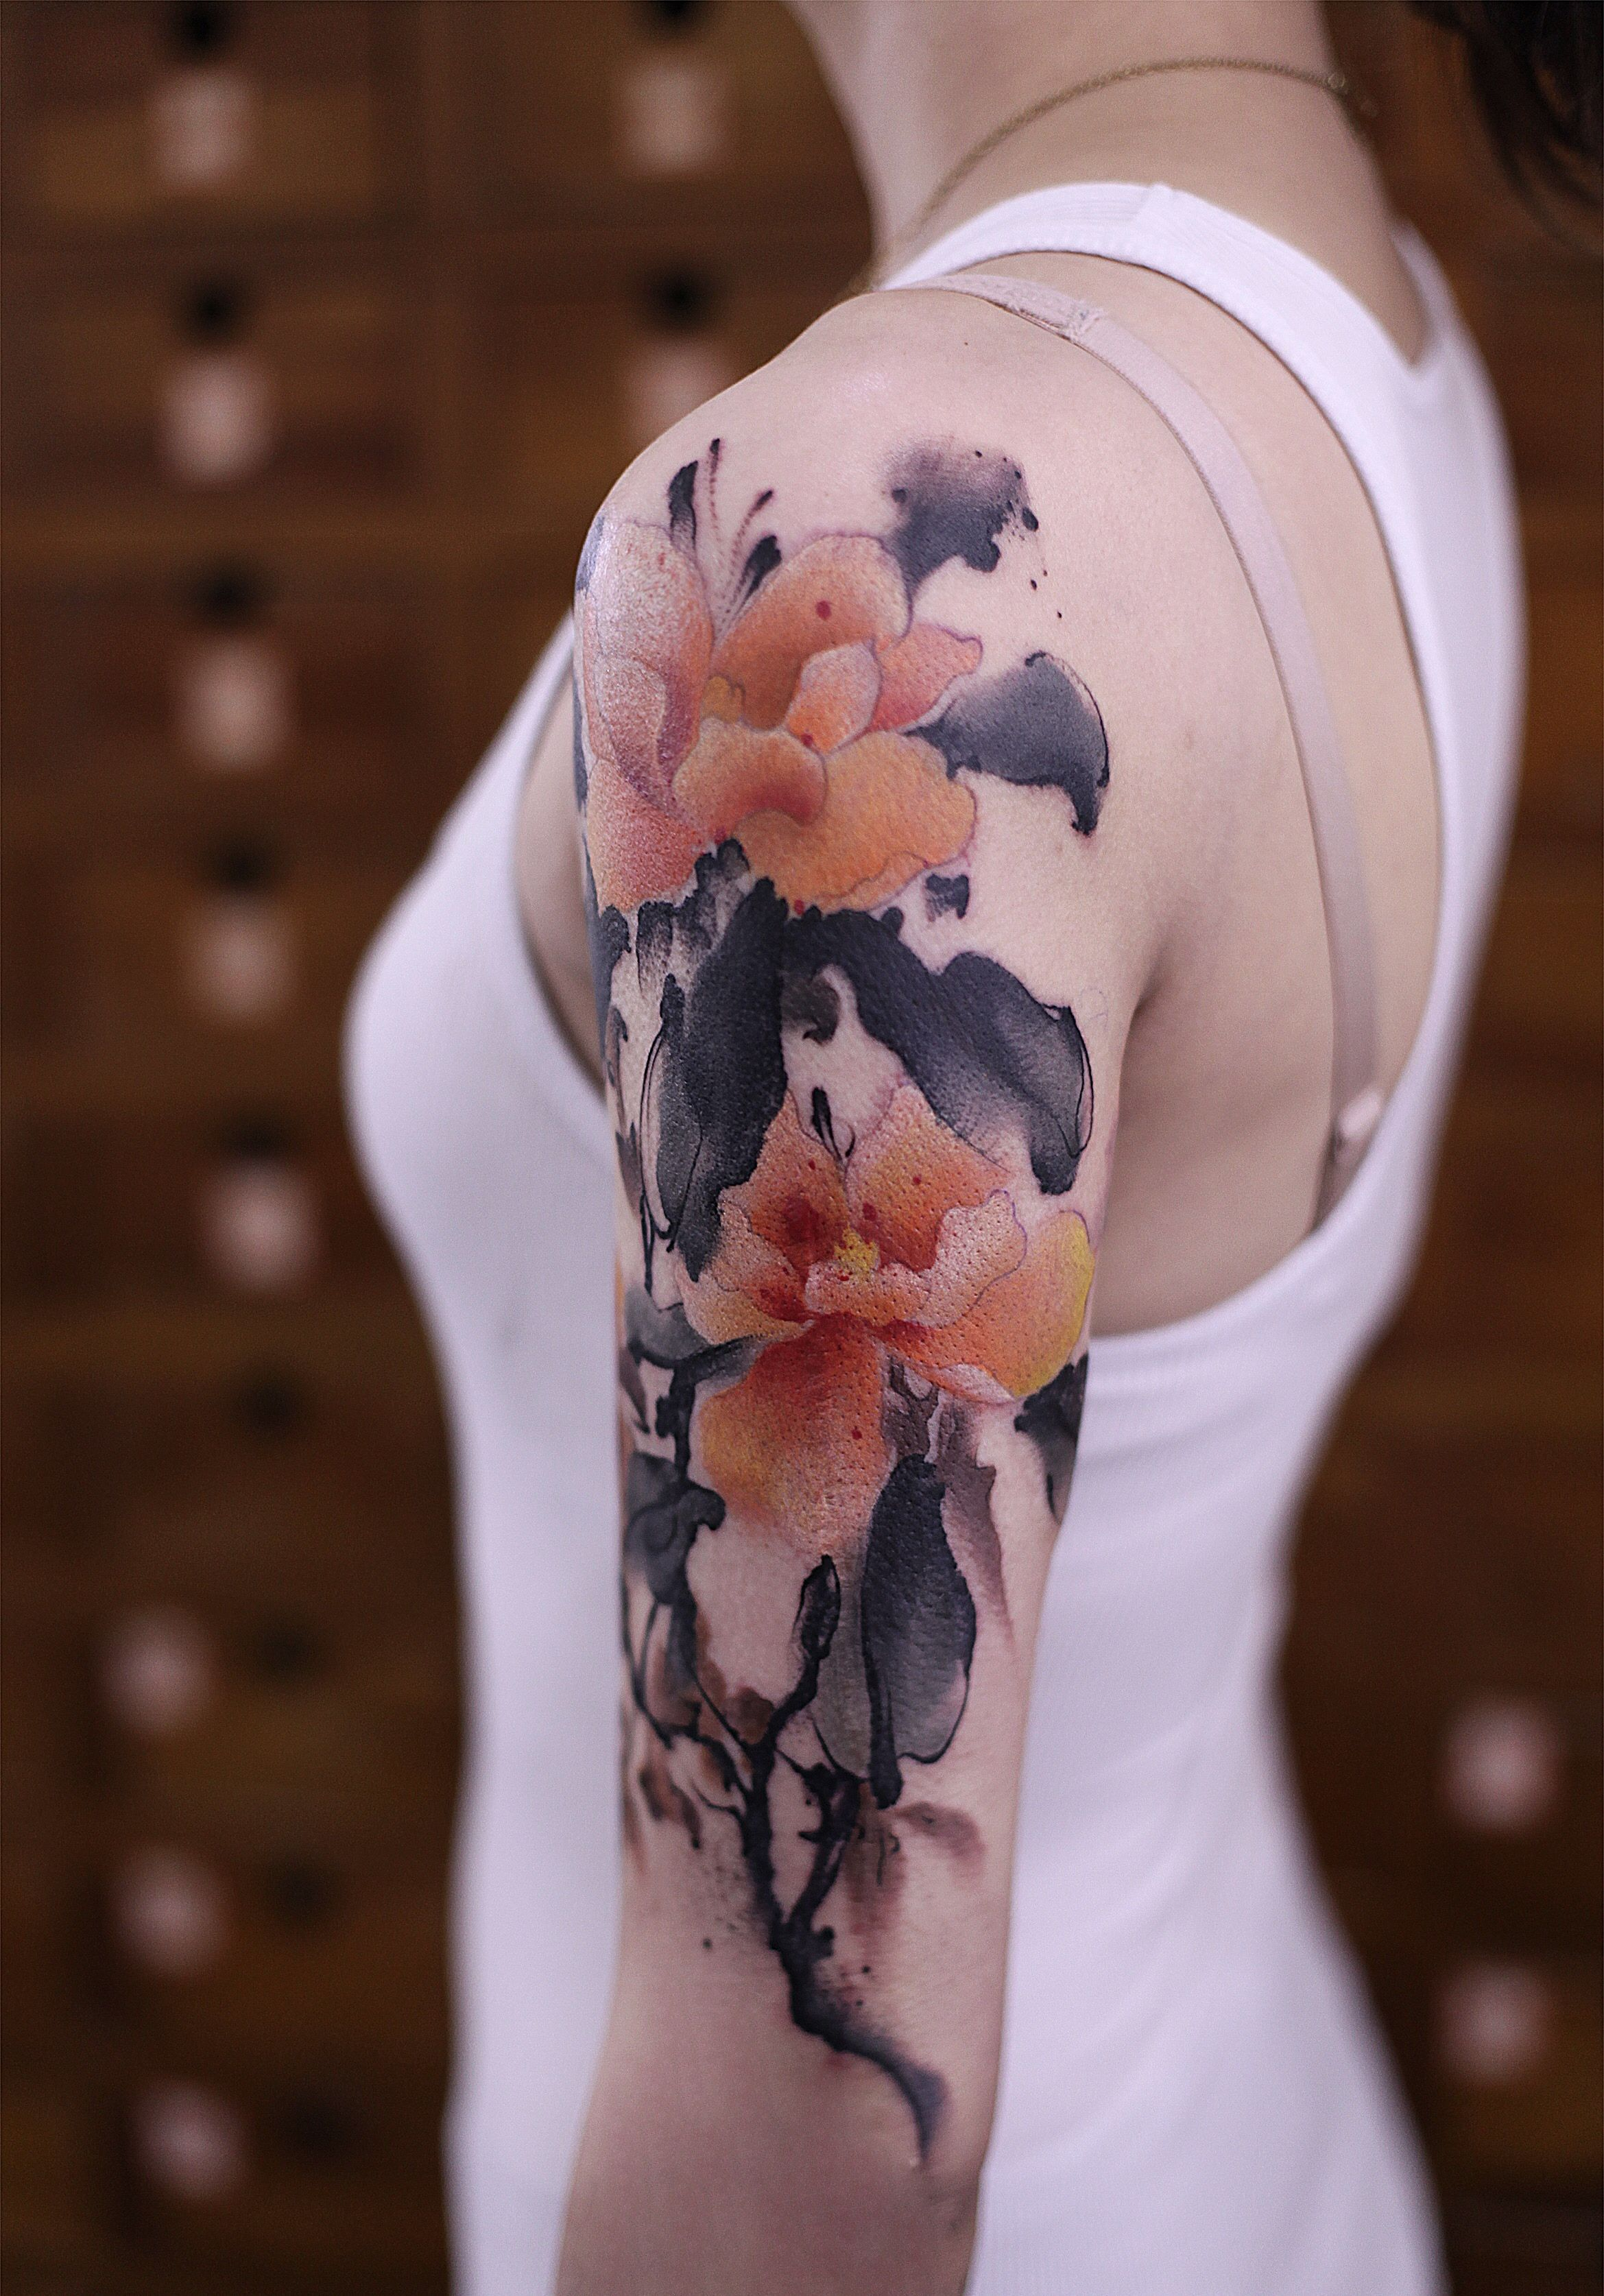 Tattoos Chinese Ink Painting Instagram Newtattoo陈洁 Avec Images